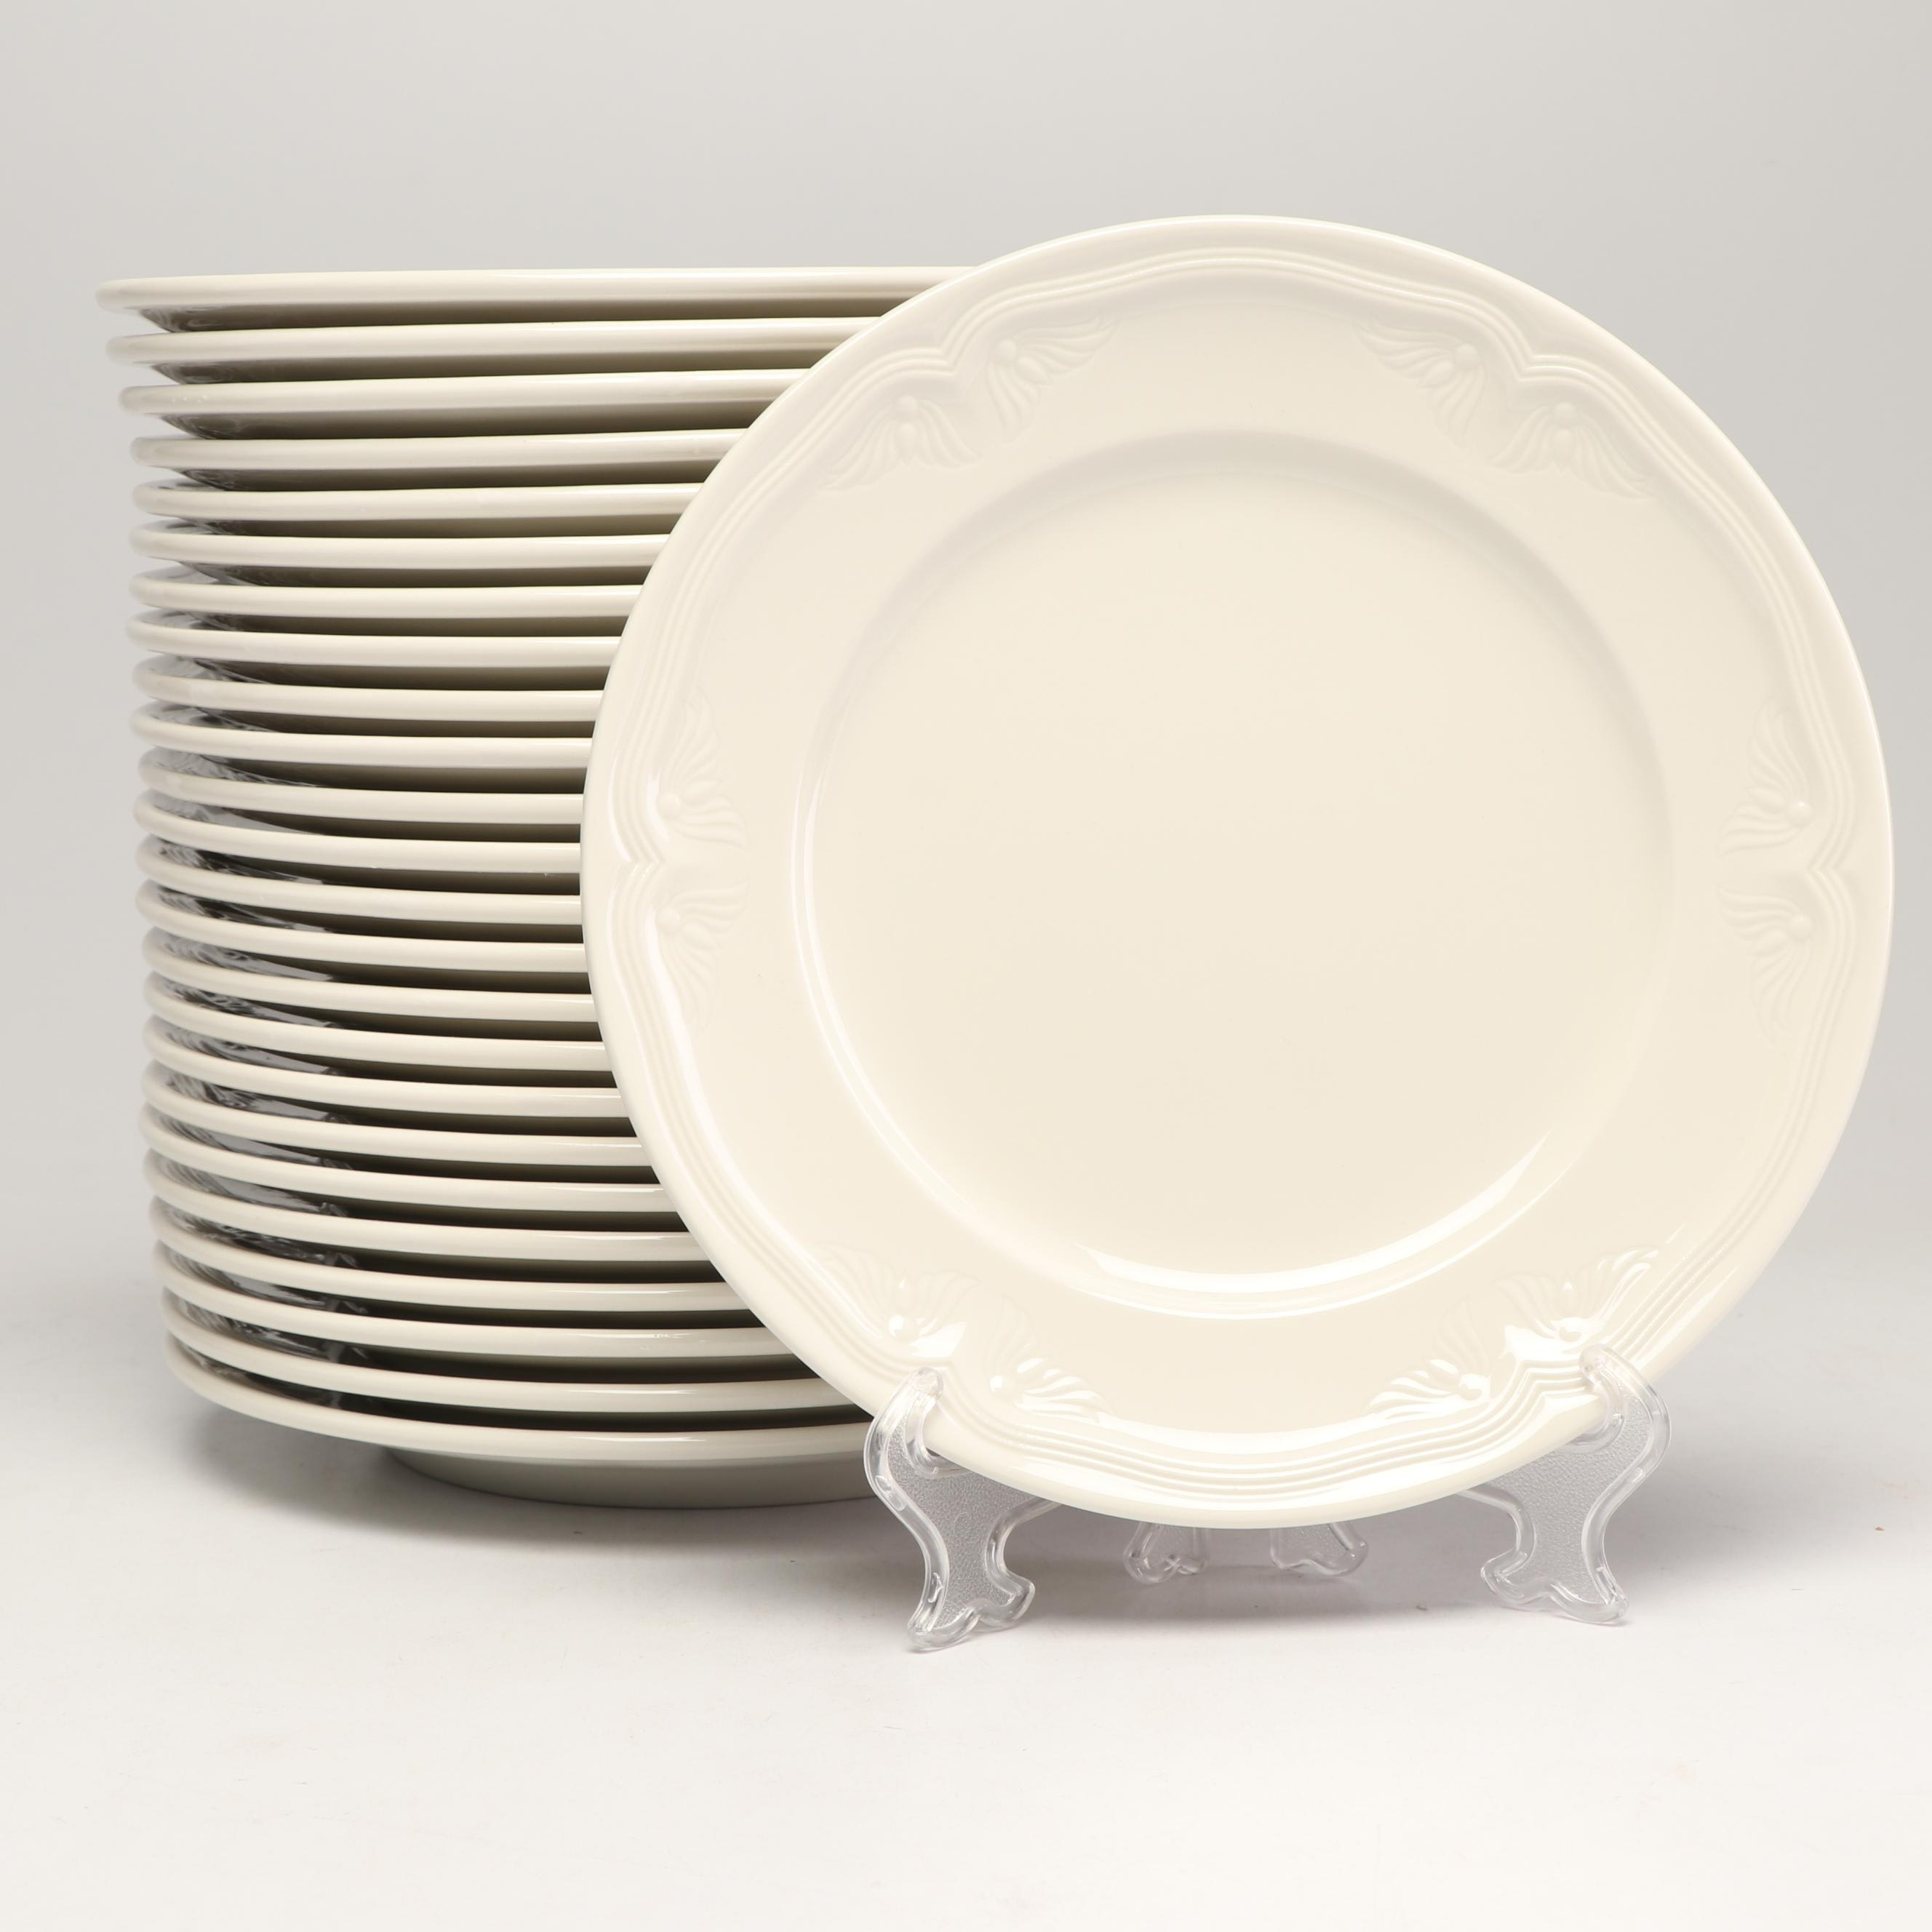 """Villeroy & Boch """"Cortina"""" Porcelain Bread and Butter Plates, Late 20th Century"""